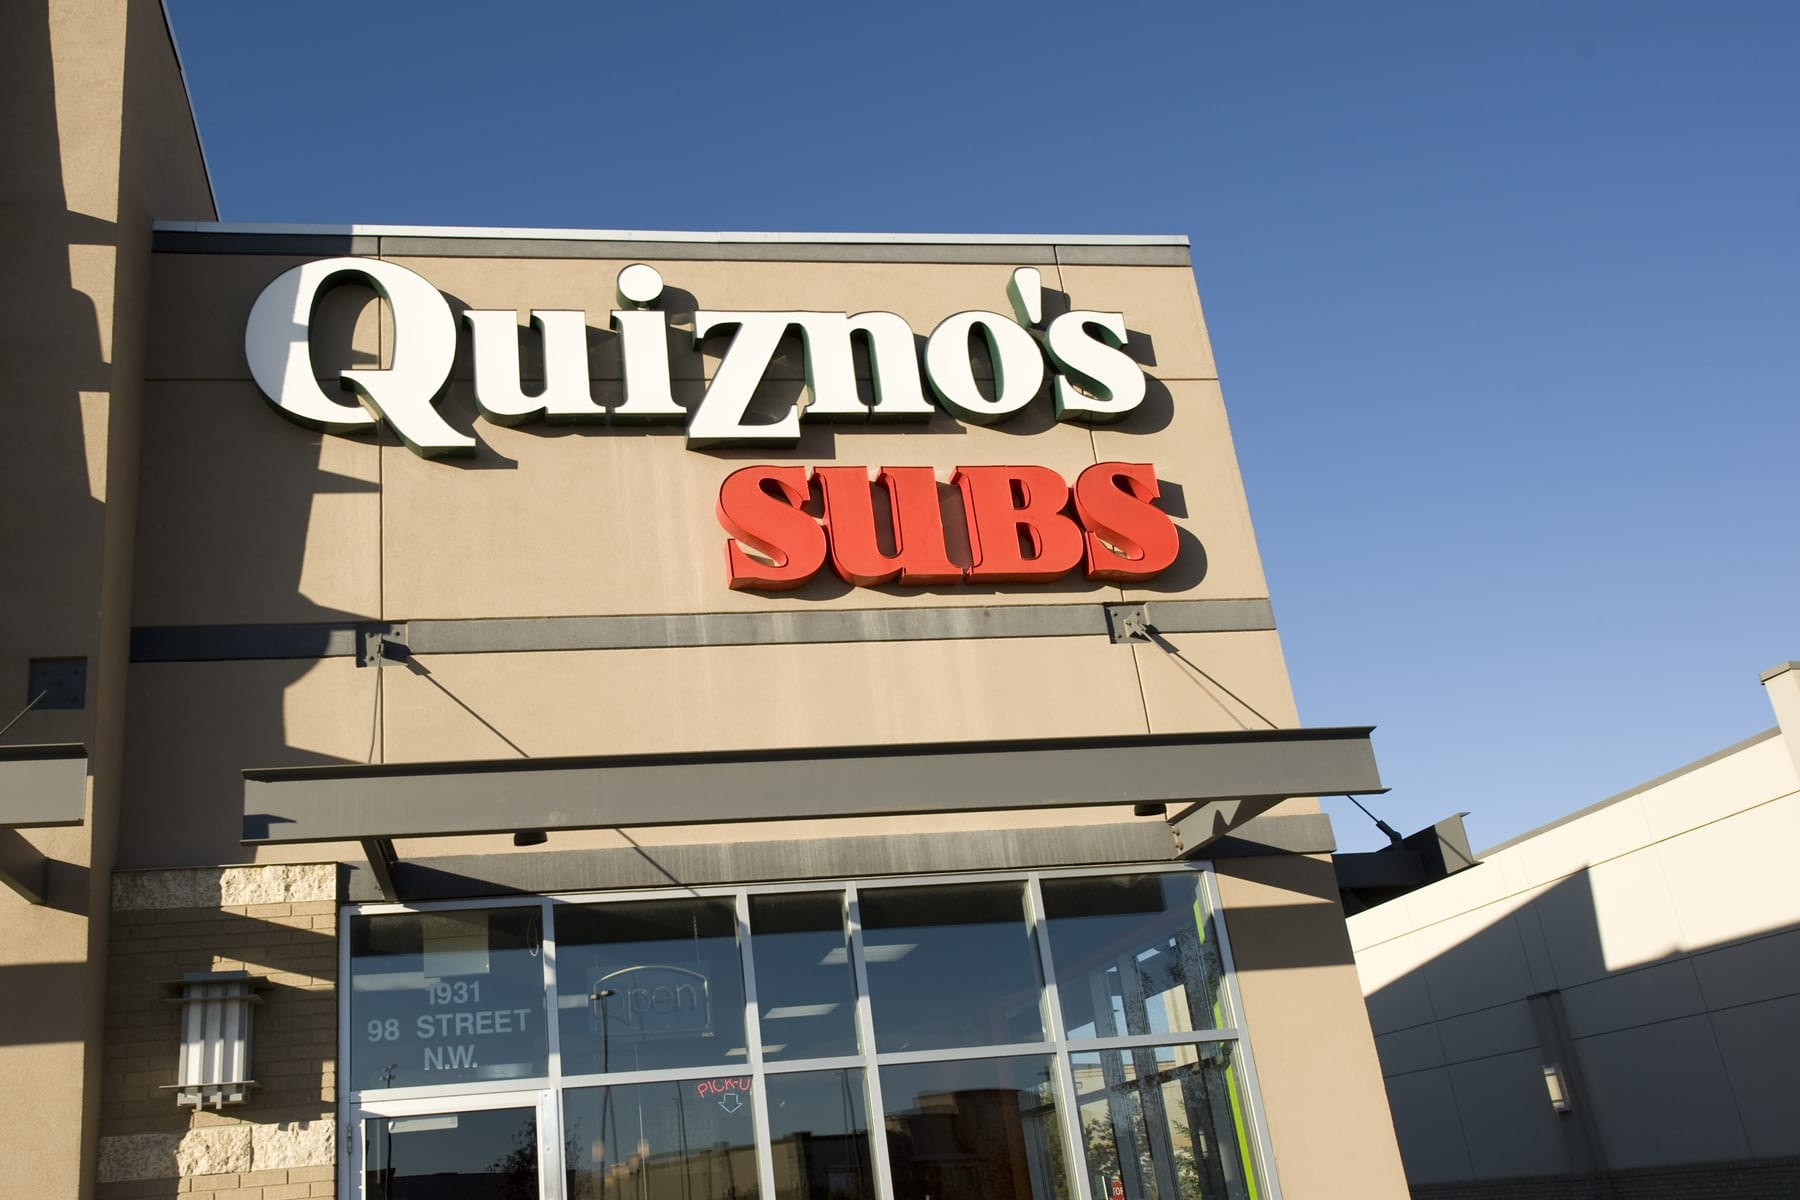 Quiznos Restaurants for Sale. BizQuest has more Quiznos Restaurant for sale listings than any other source. Whether you are looking to buy a Quiznos Restaurant for sale or sell your Quiznos Restaurant, BizQuest is the Internet's leading Quiznos Restaurant for sale marketplace.